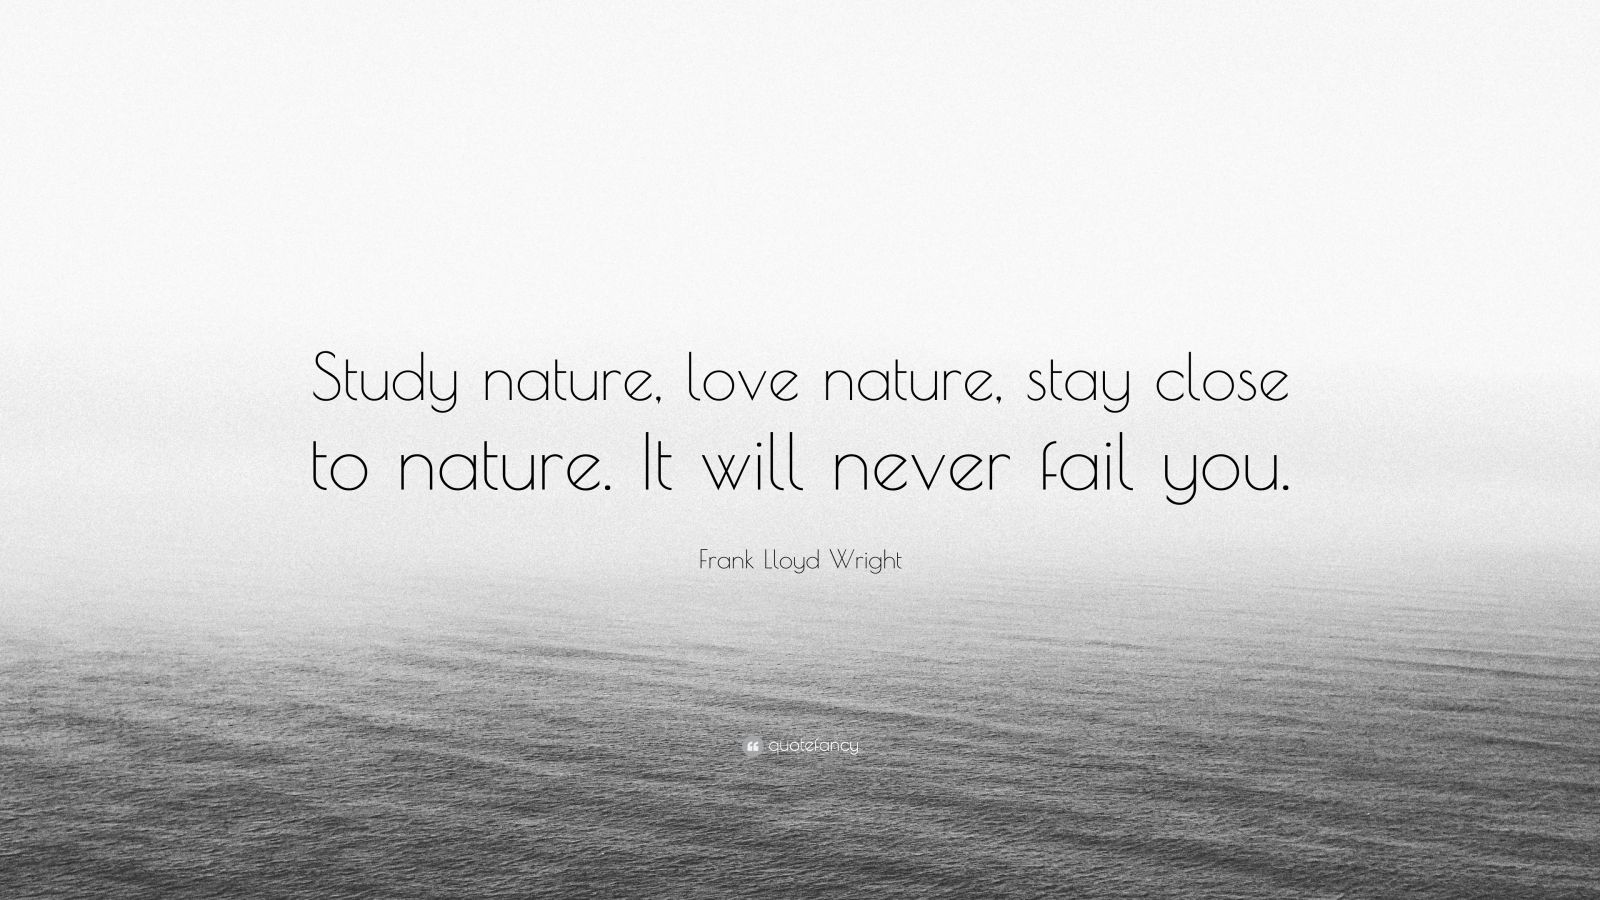 John Muir Quotes Wallpaper Frank Lloyd Wright Quote Study Nature Love Nature Stay